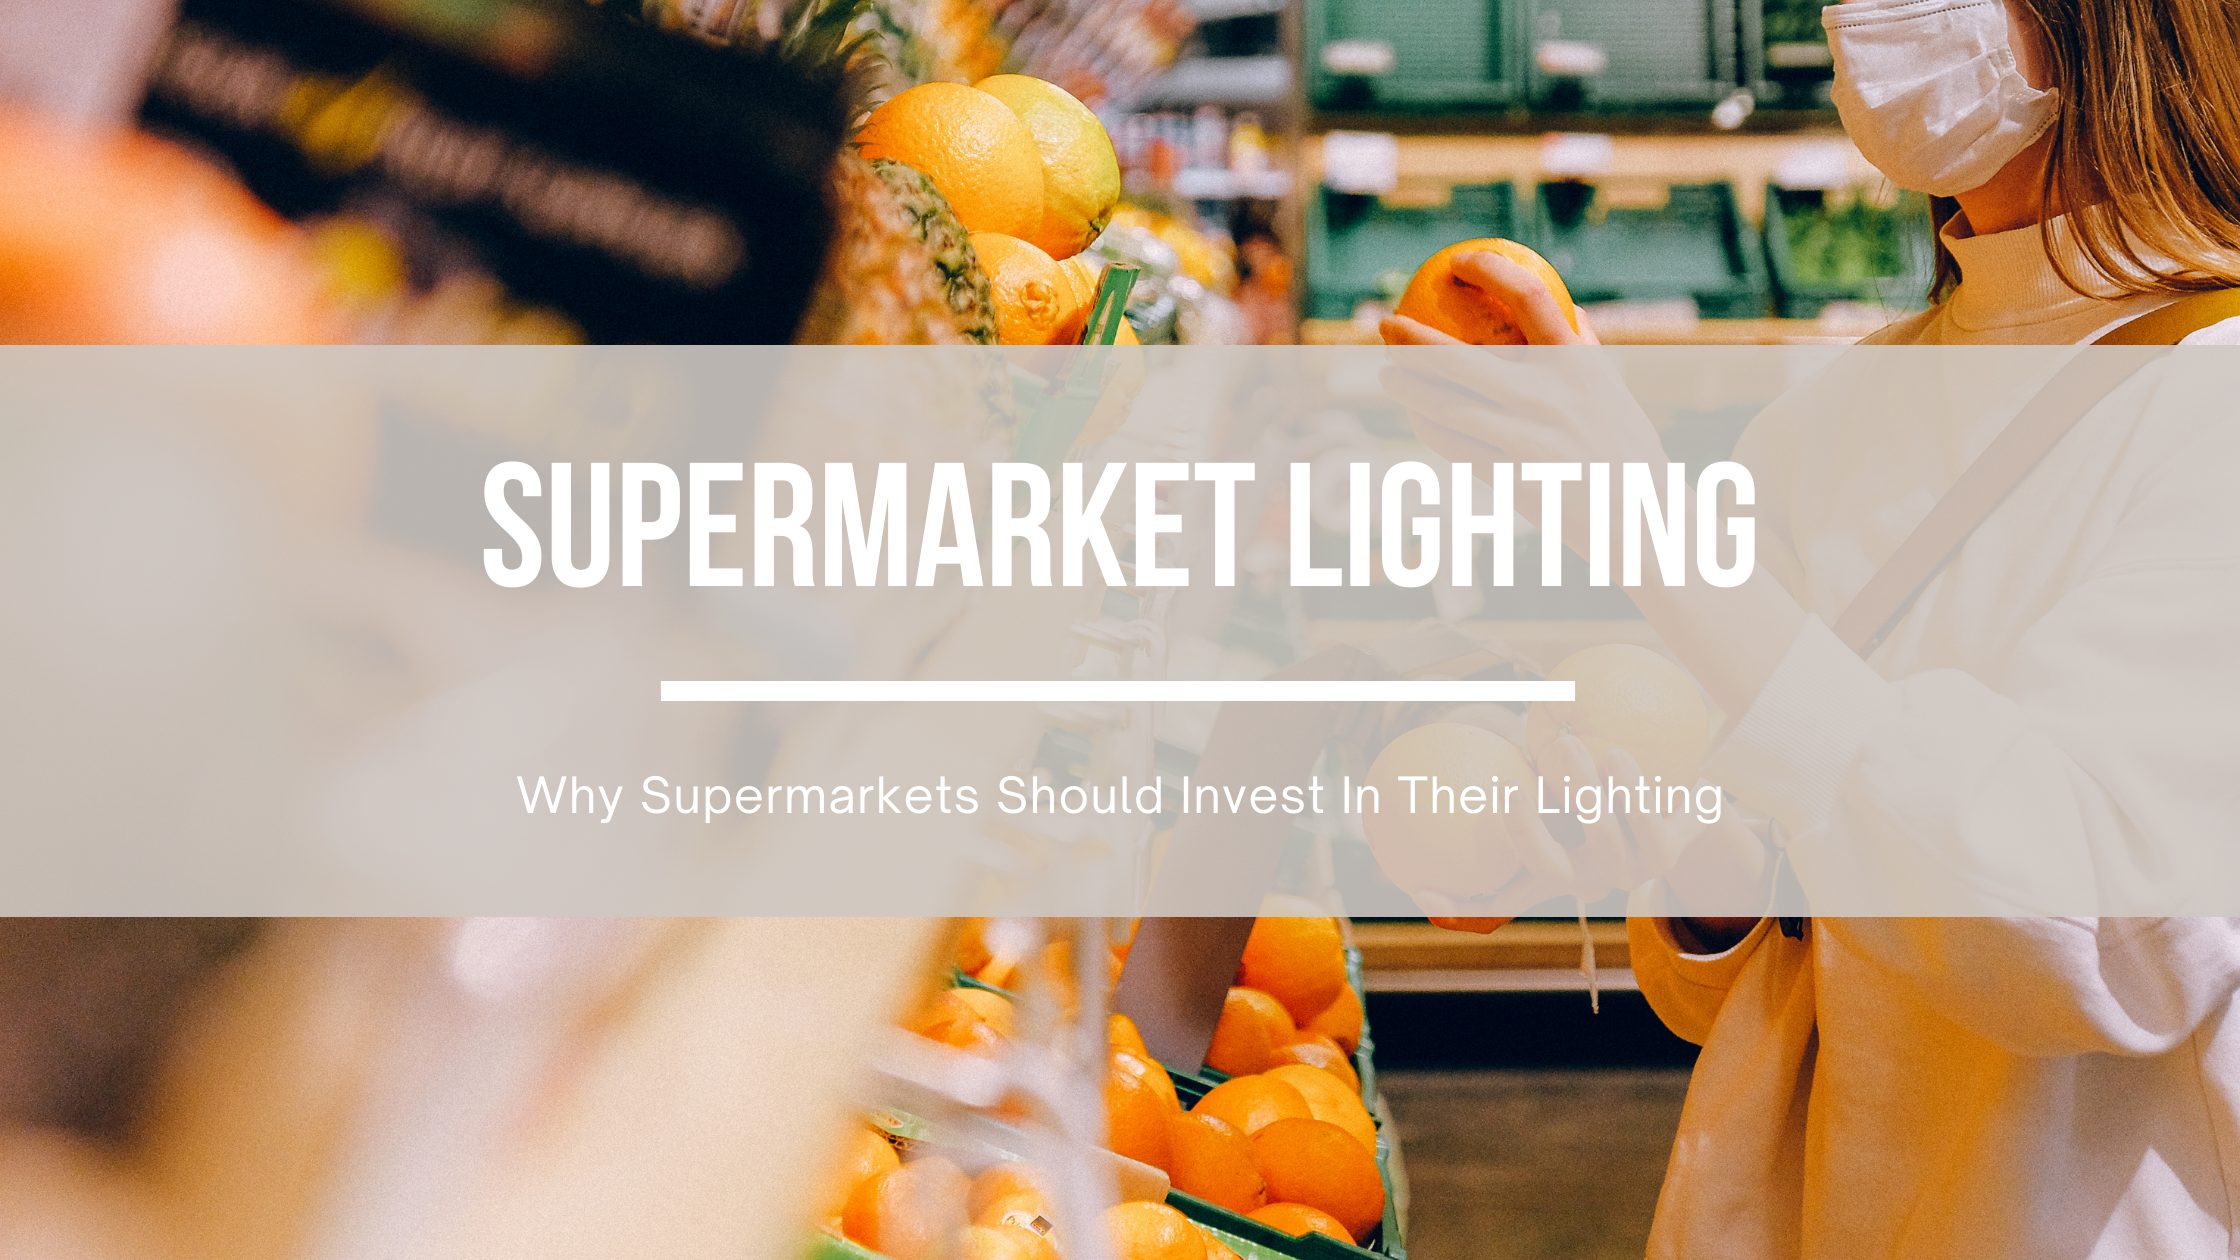 Why Supermarkets should invest in lighting